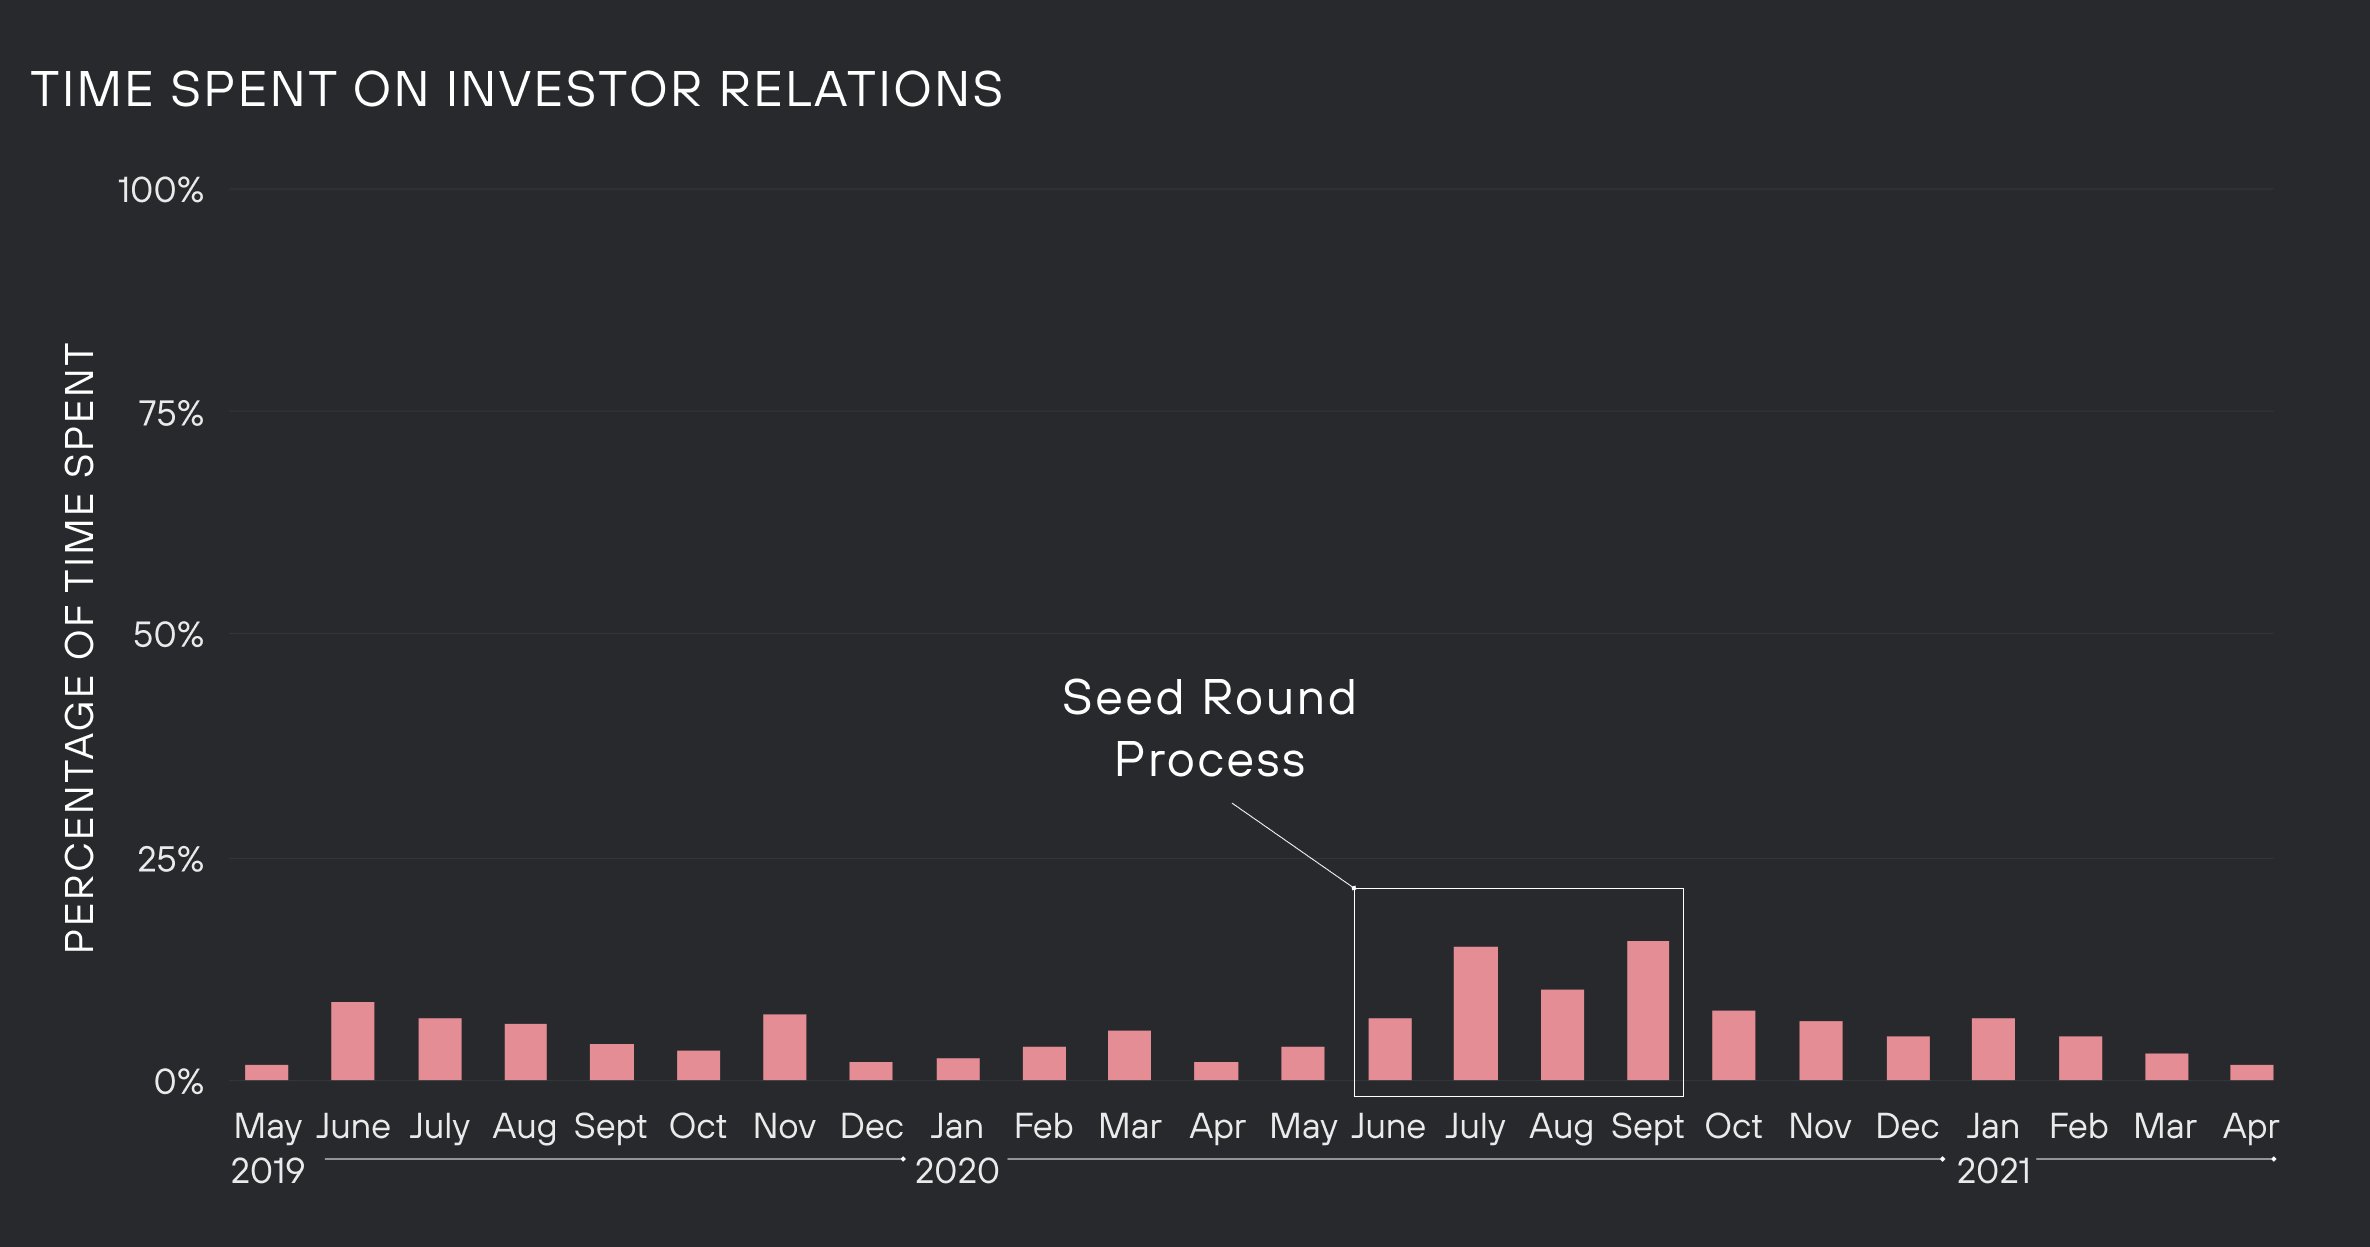 Graph of time spent on investor relations